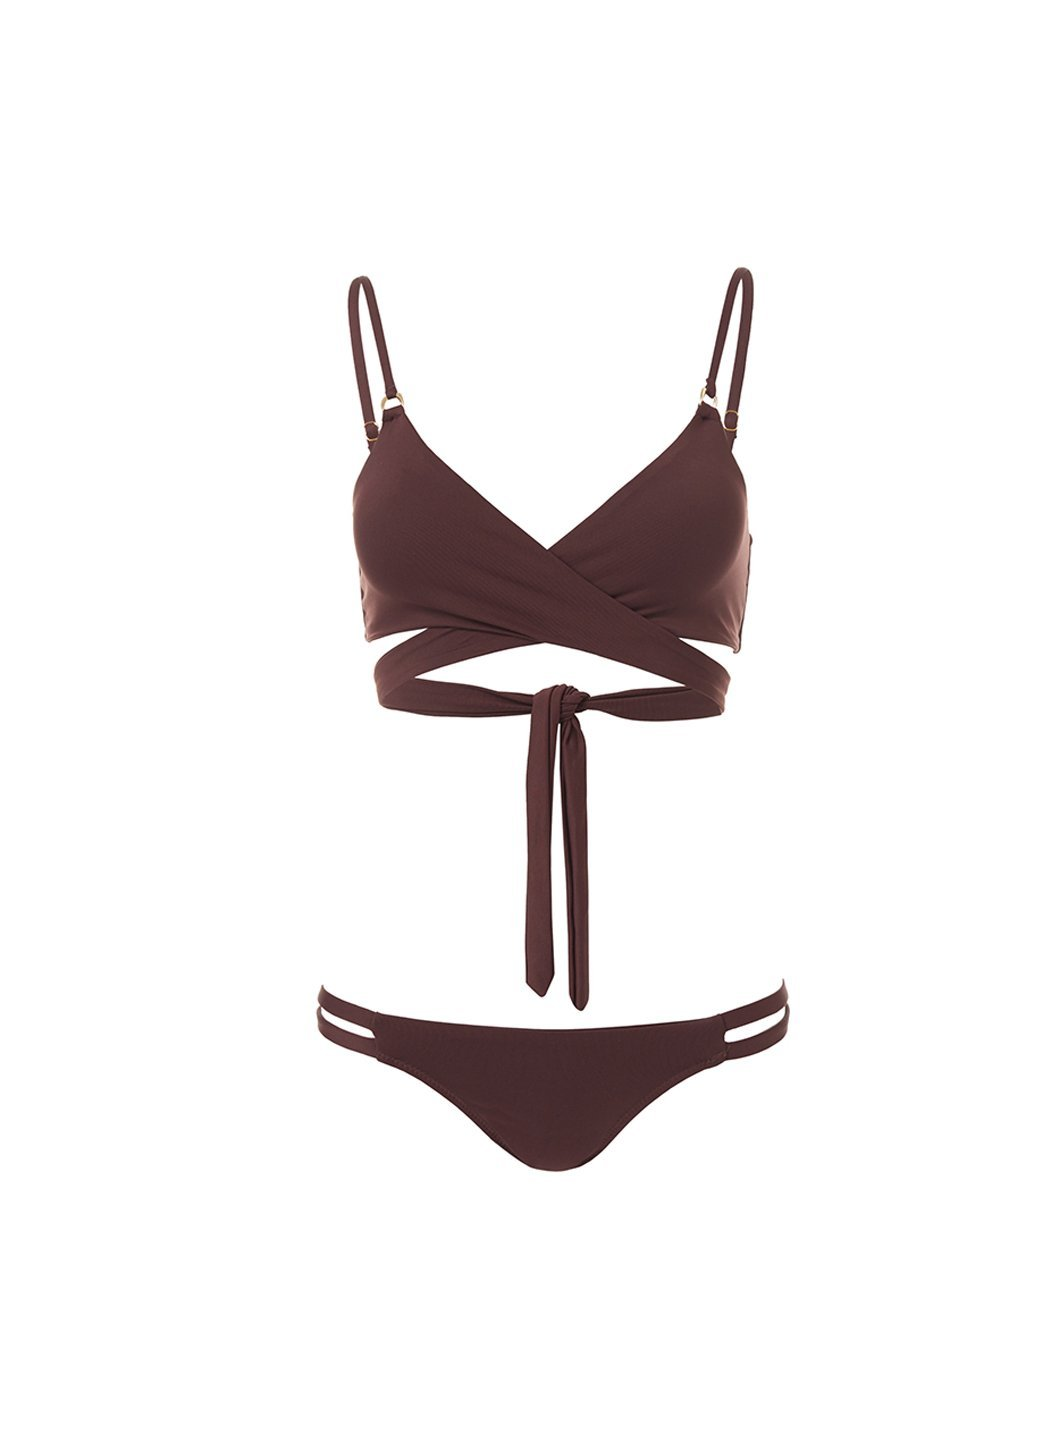 indonesia walnut overtheshoulder wrap bikini 2019